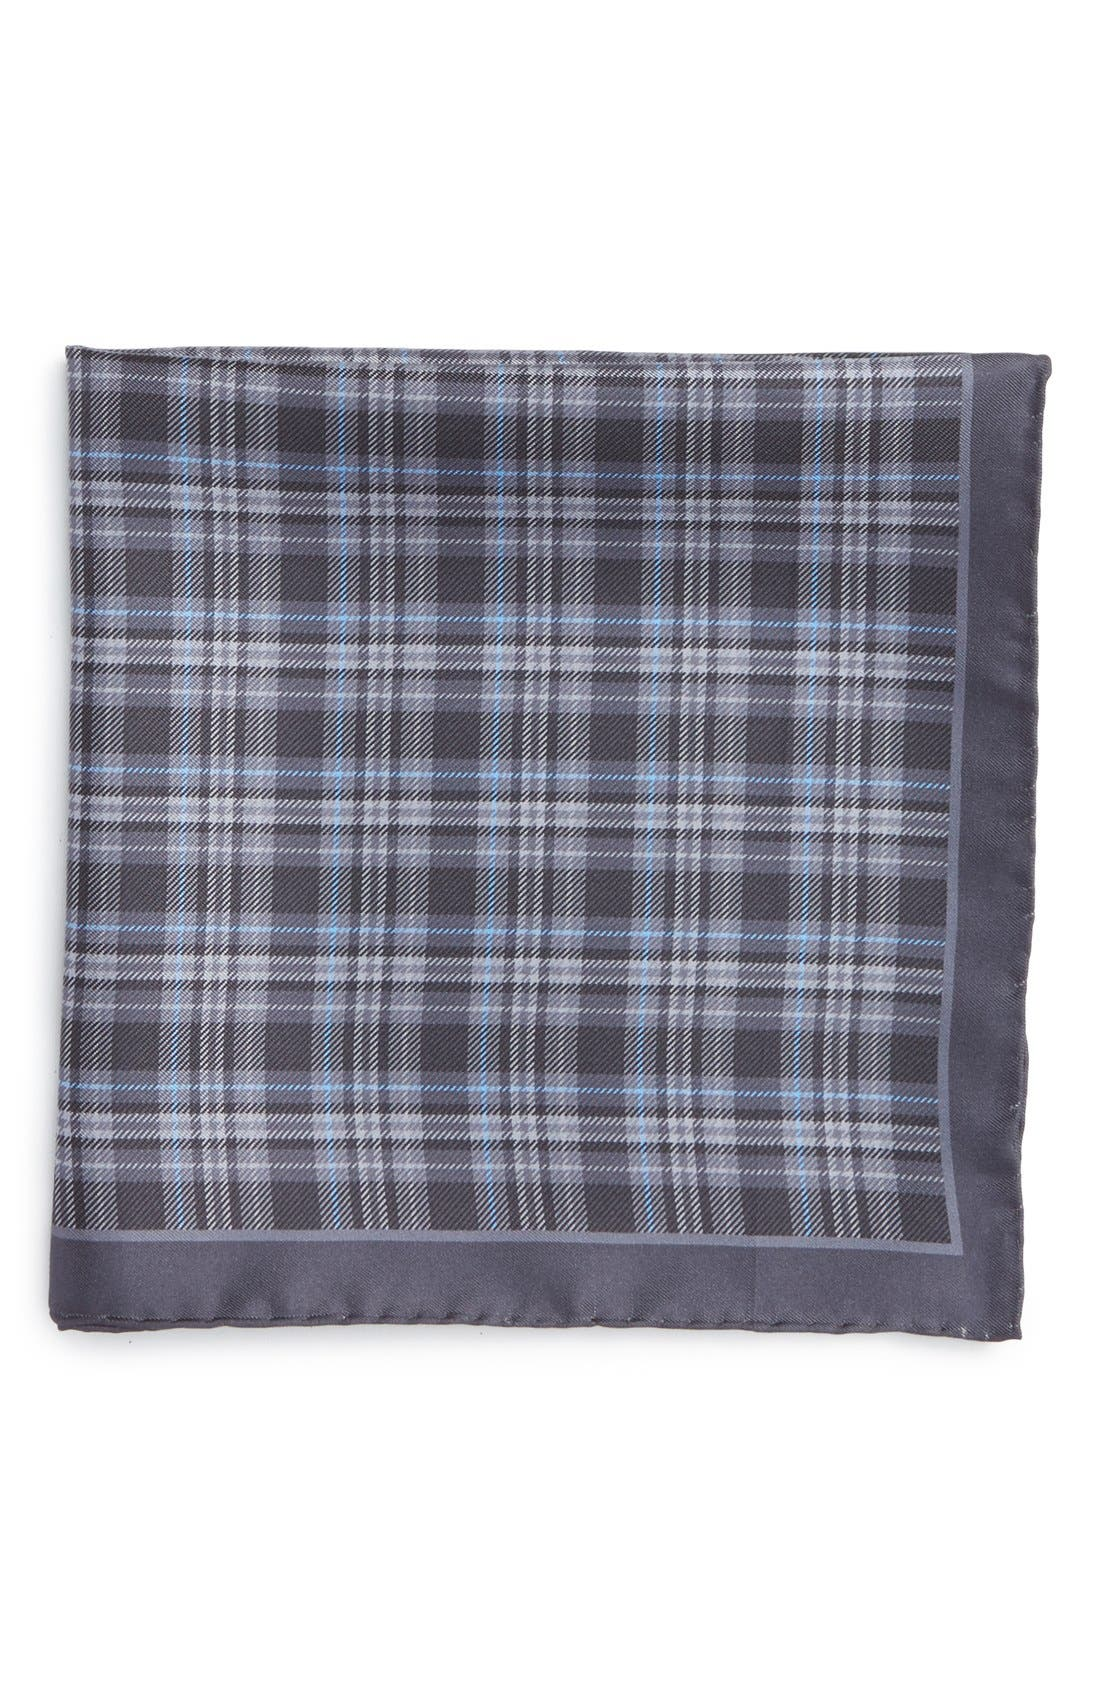 Robert Talbott Plaid Silk Pocket Square